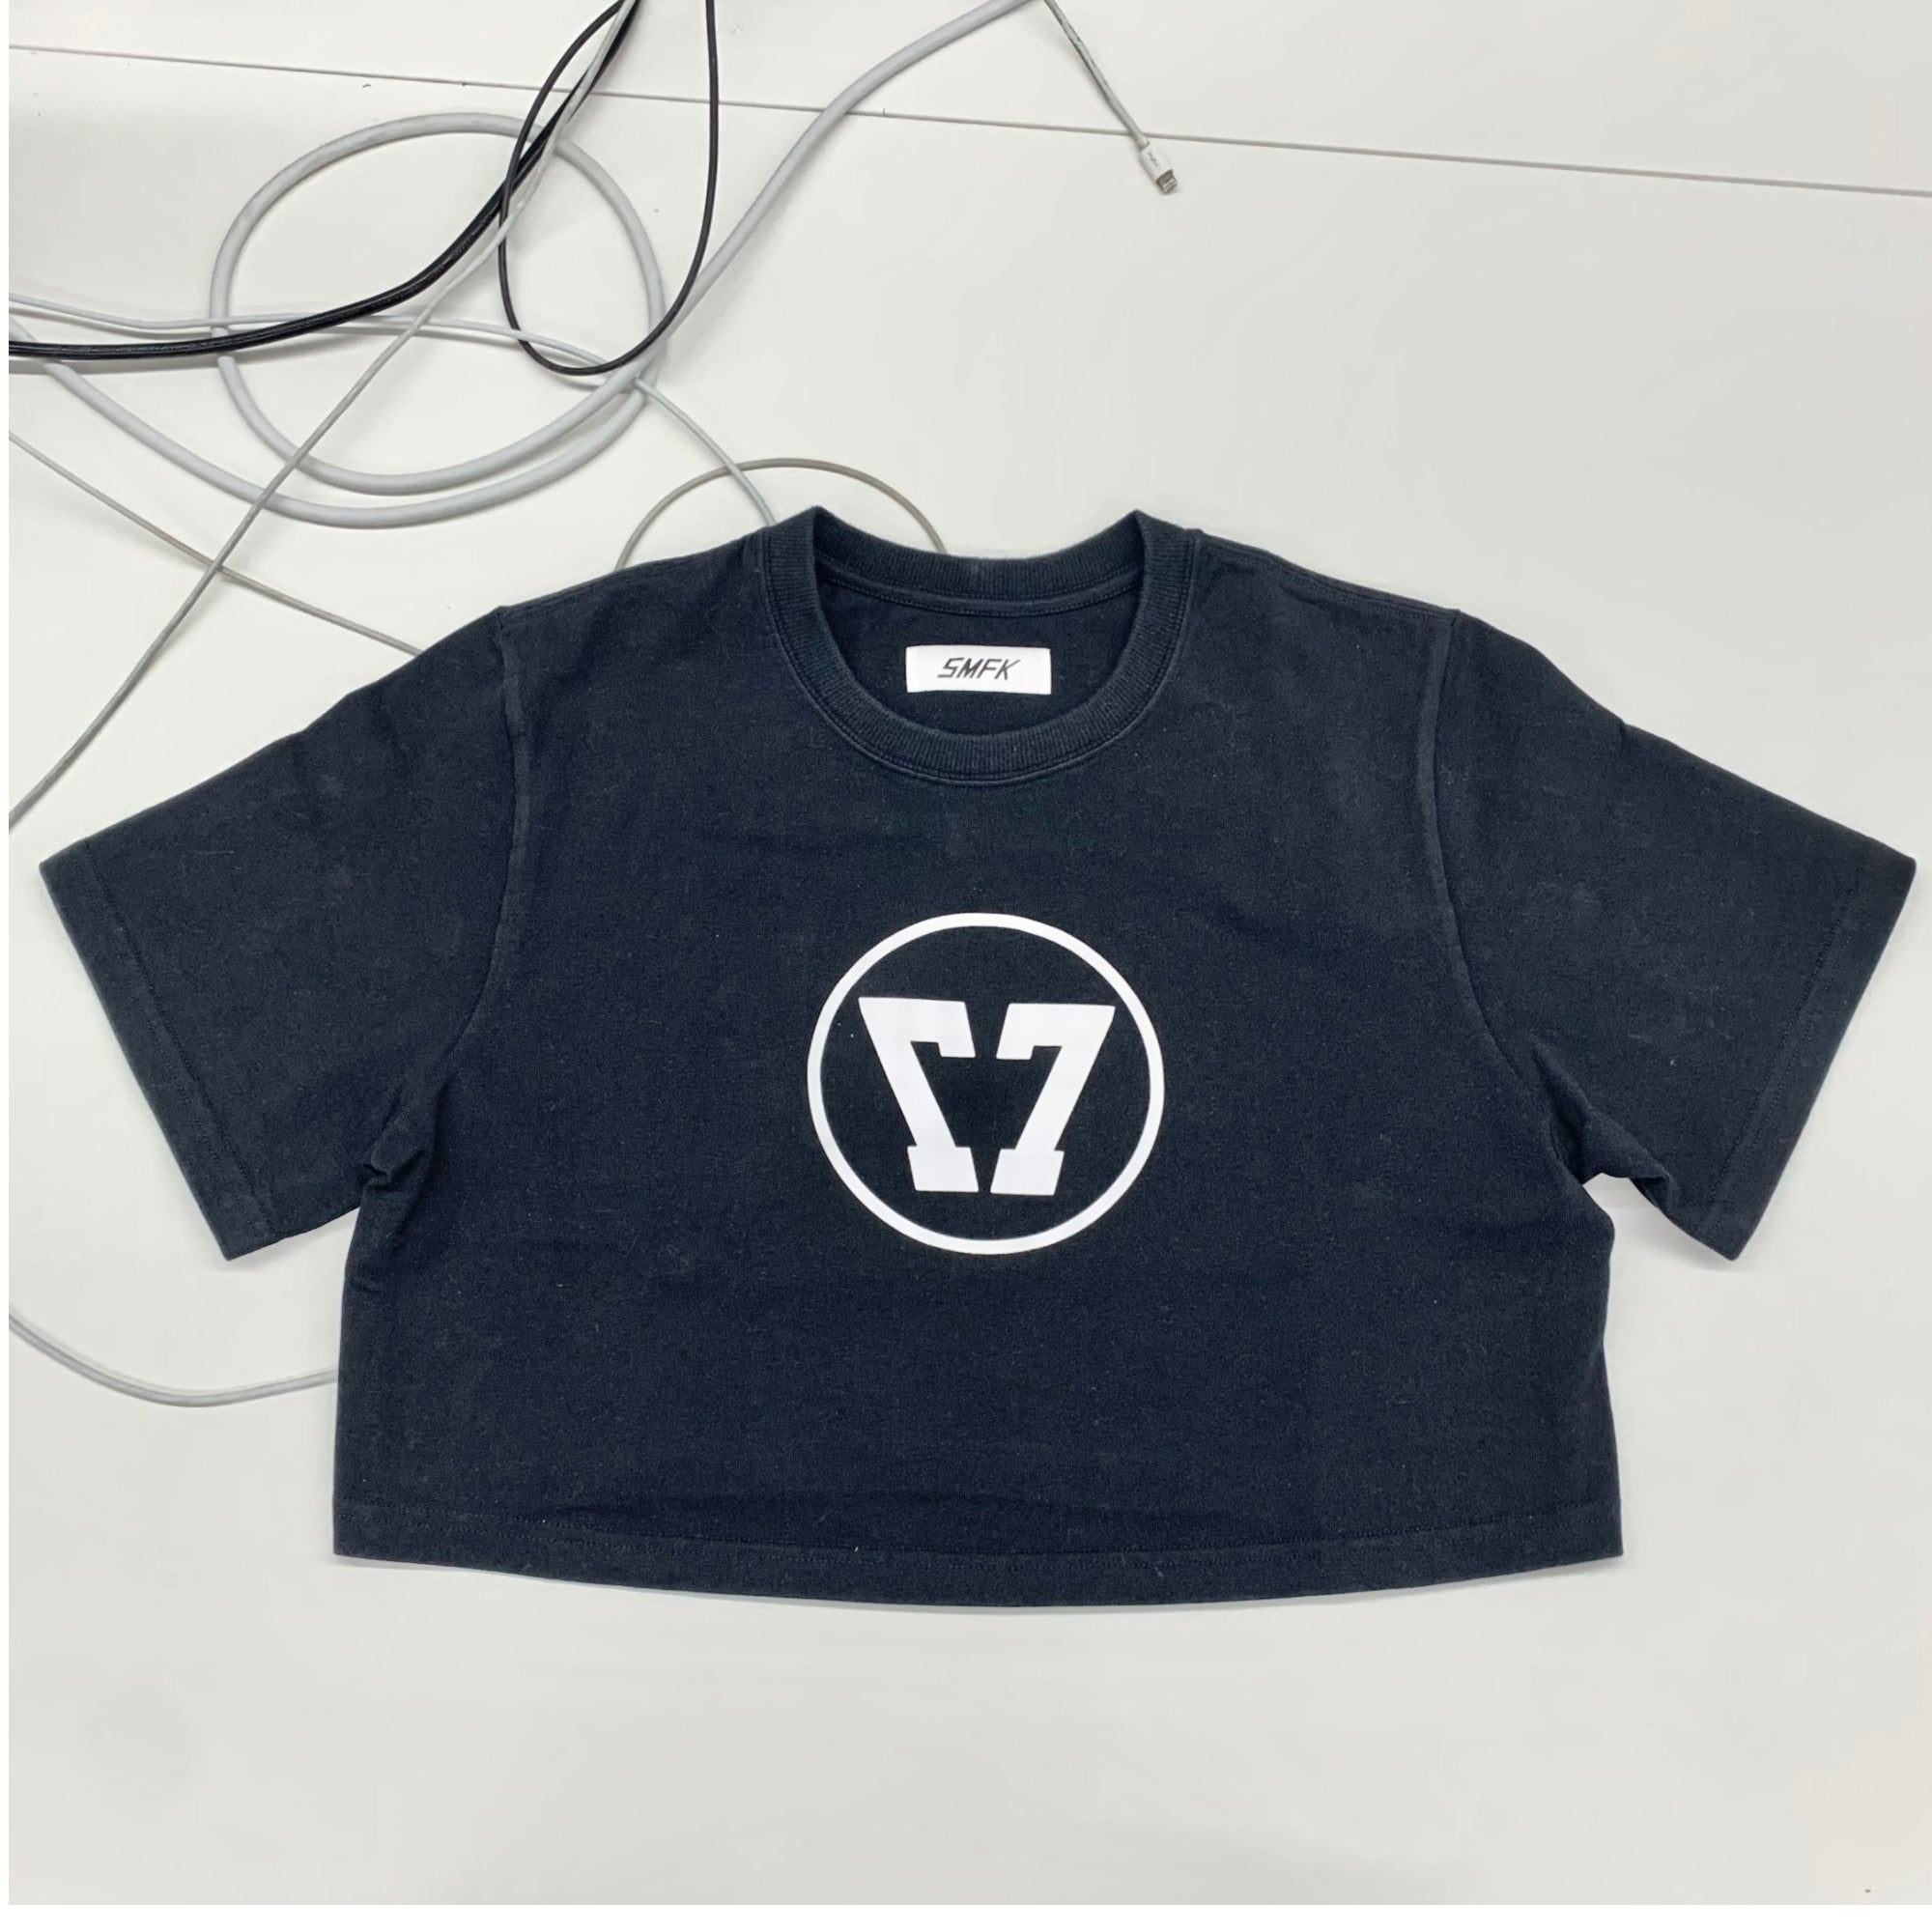 SMFK Baby Vintage Tee Black | MADA IN CHINA